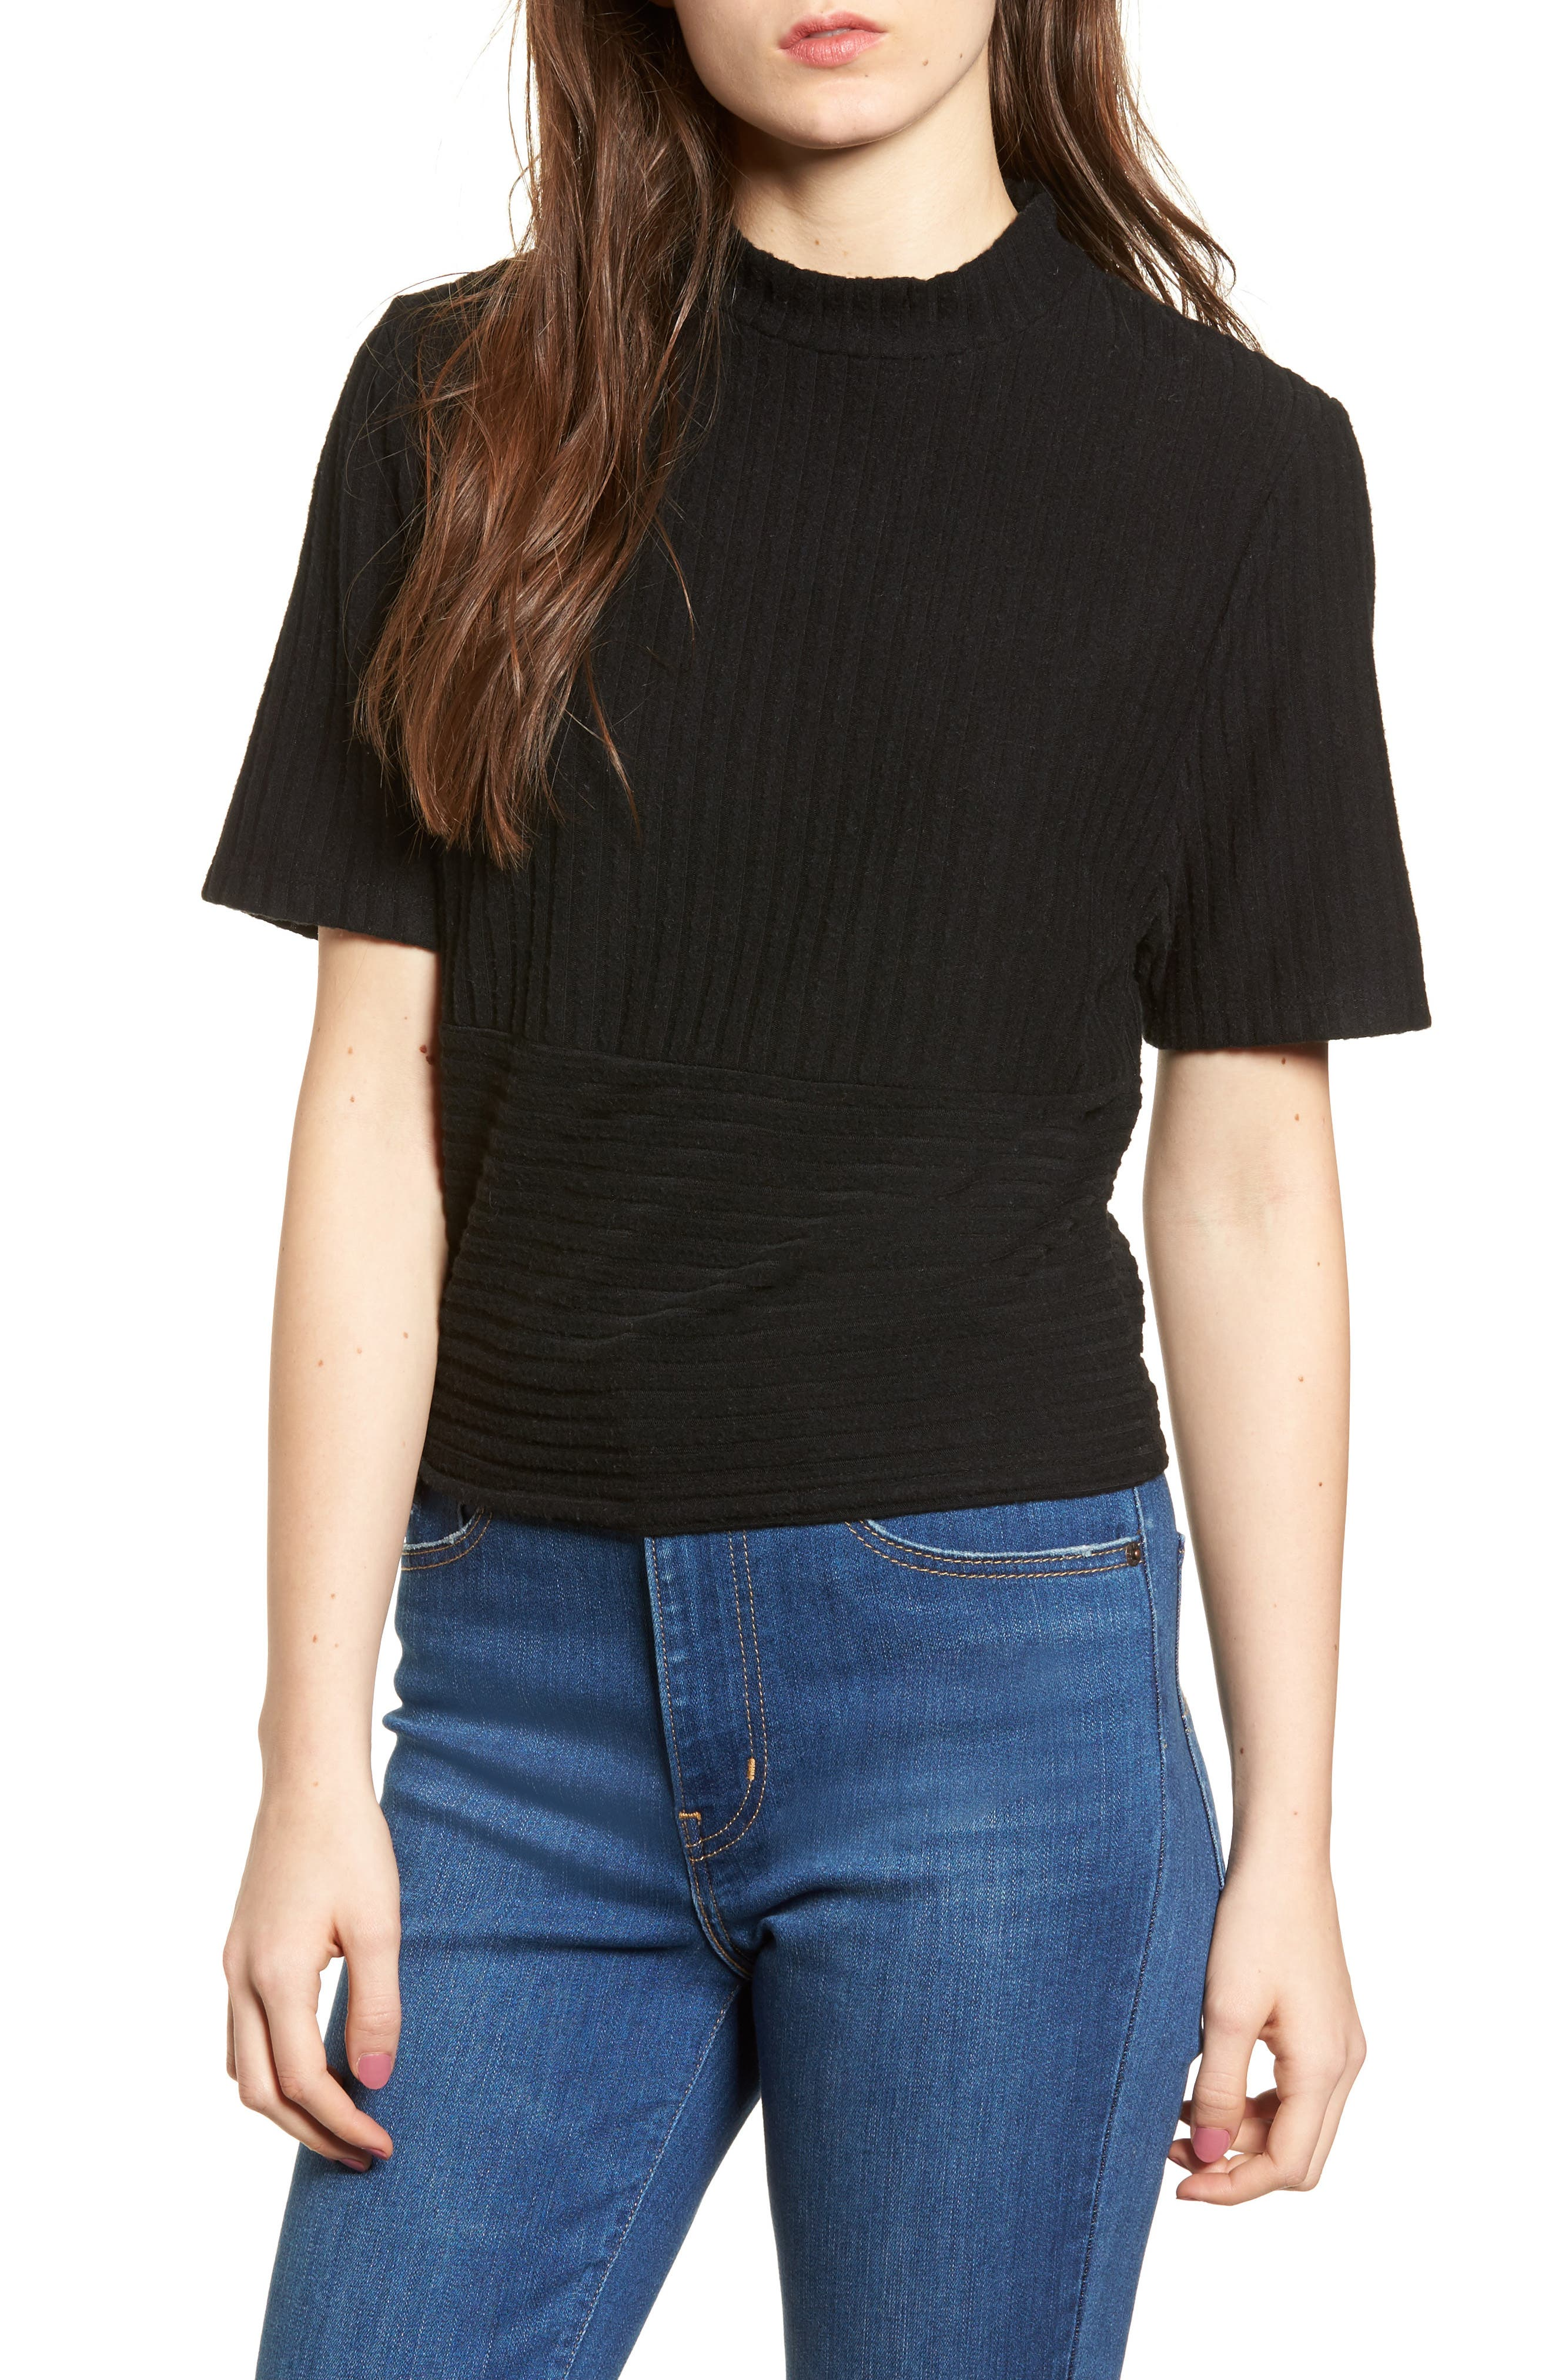 PST by Project Social T Mock Neck Ribbed Top